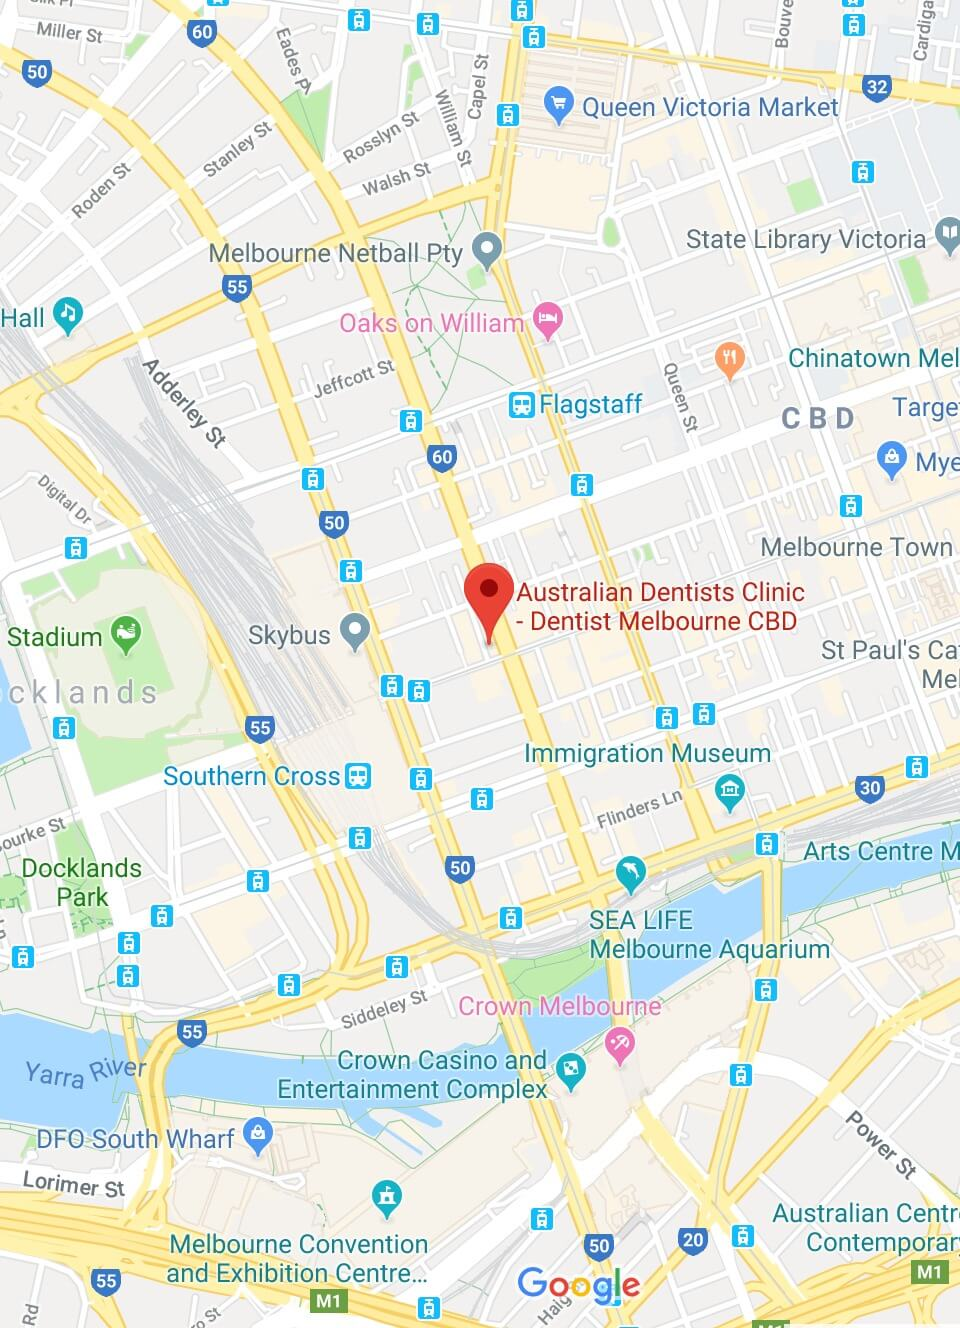 Australian Dentists Clinic - Melbourne CBD Location